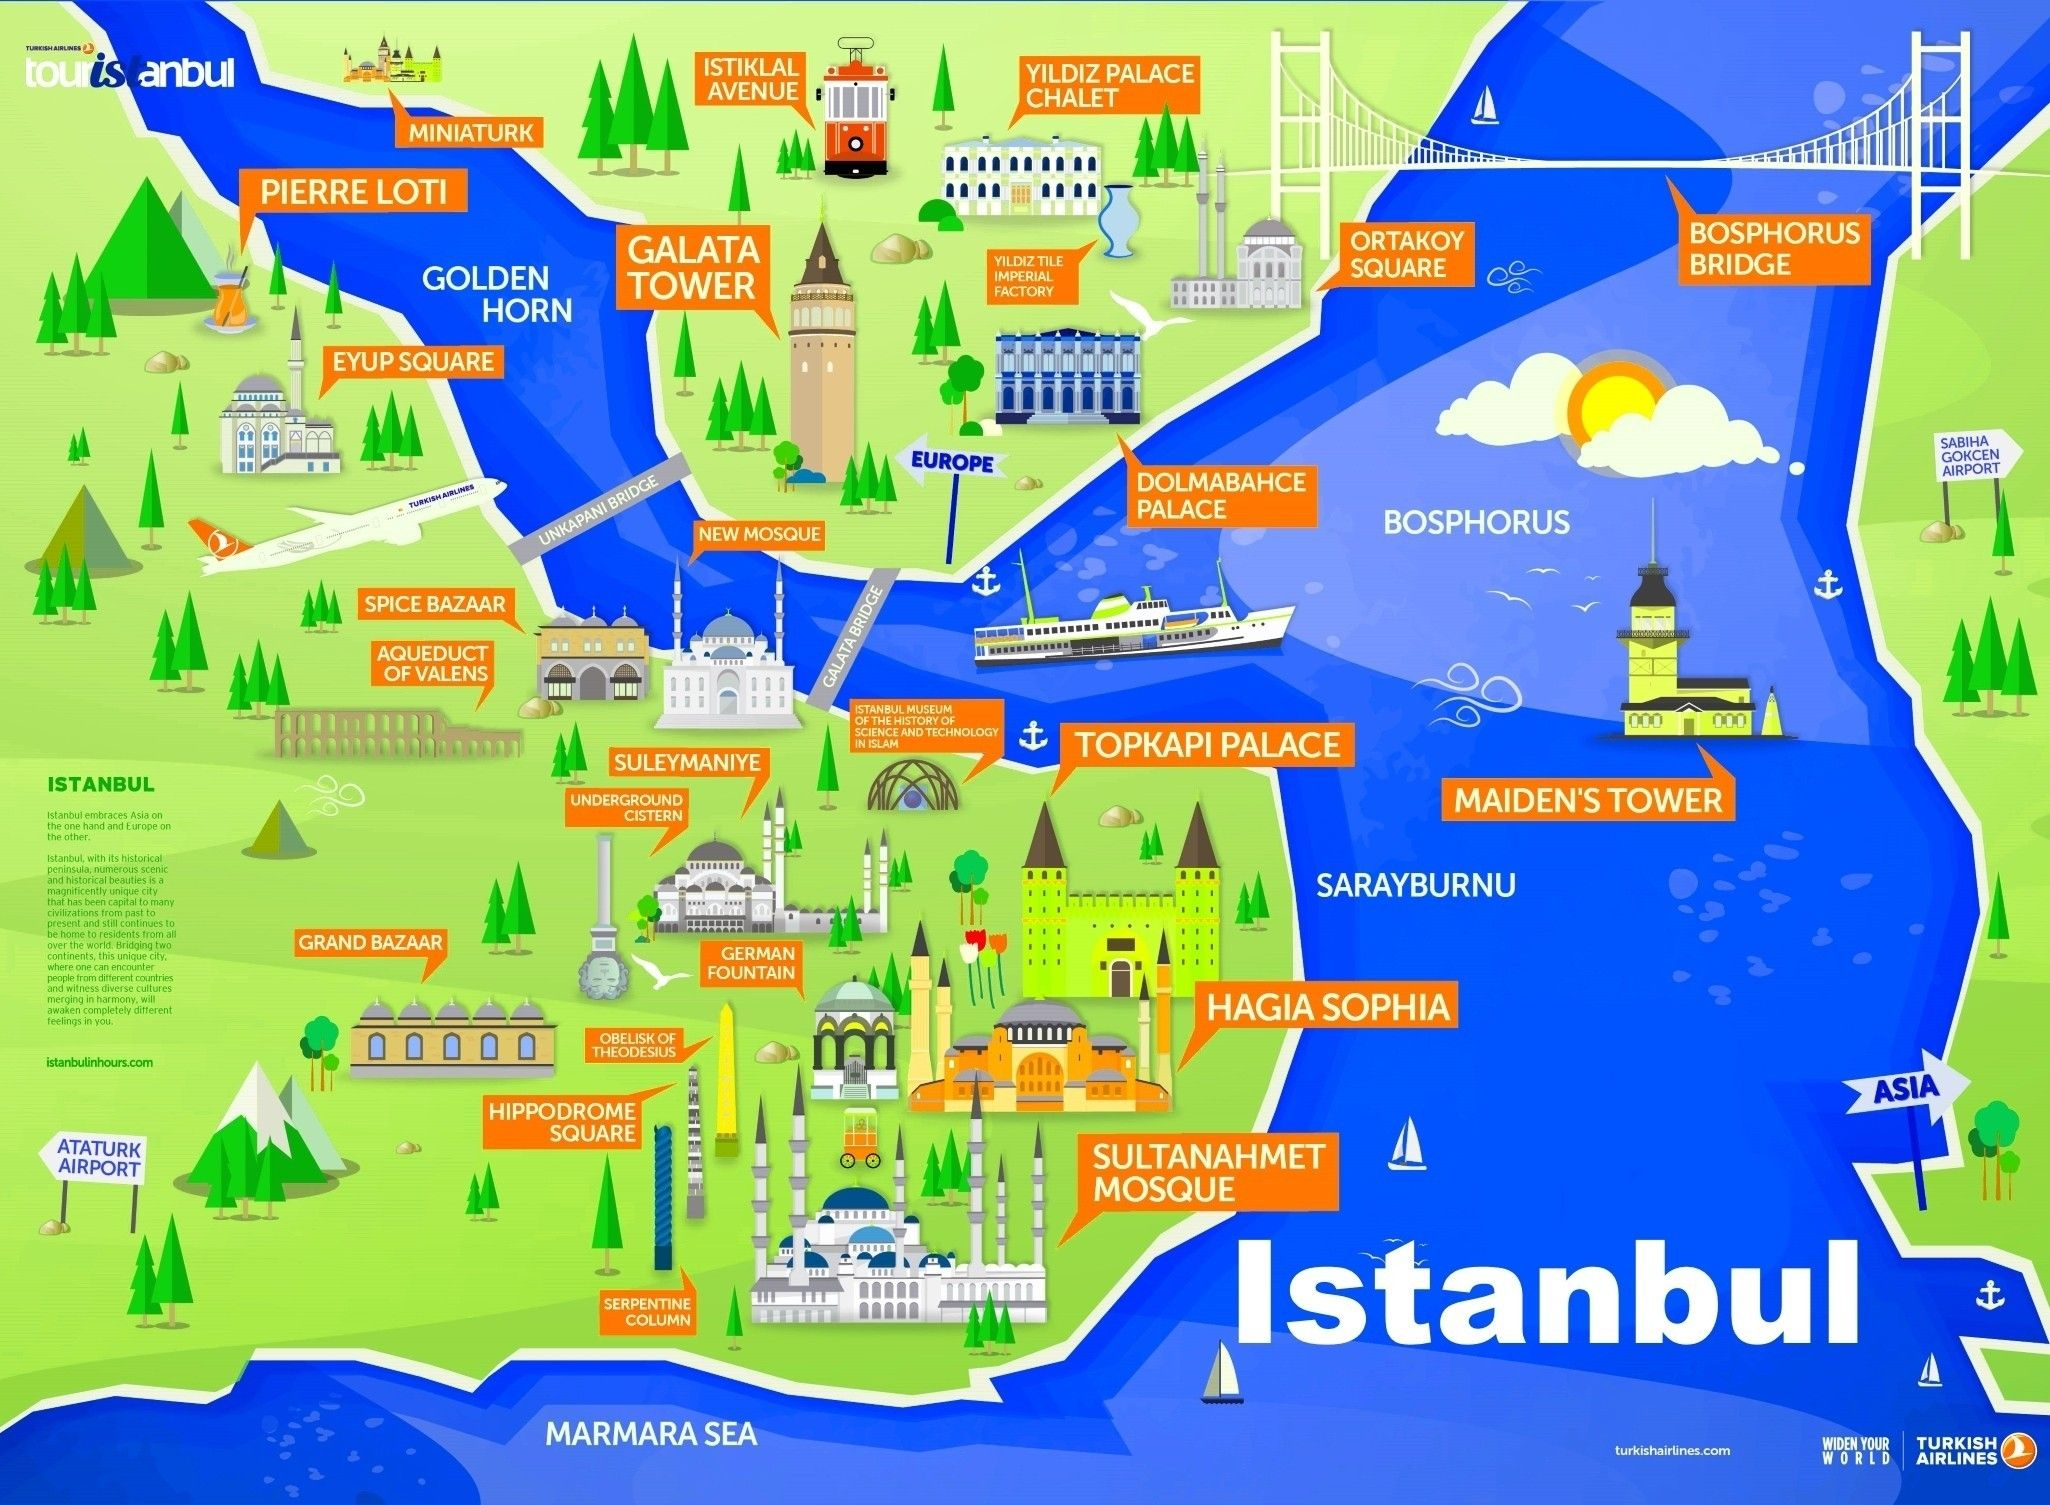 Best World Map Free Download New Tourist Maps Istanbul Turkey Free on world map of greece, world map of egypt, world map of diego garcia, world map of romania, world map of iran, world map of syria, world map of albania, world map of russia, world map of british territory, world map of iraq, world map of aleutian islands, world map of gaza, world map of morocco, world map of us virgin islands, world map of china, world map of jordan, world map of maldives, world map of peru, world map of the himalayas, world map of singapore,